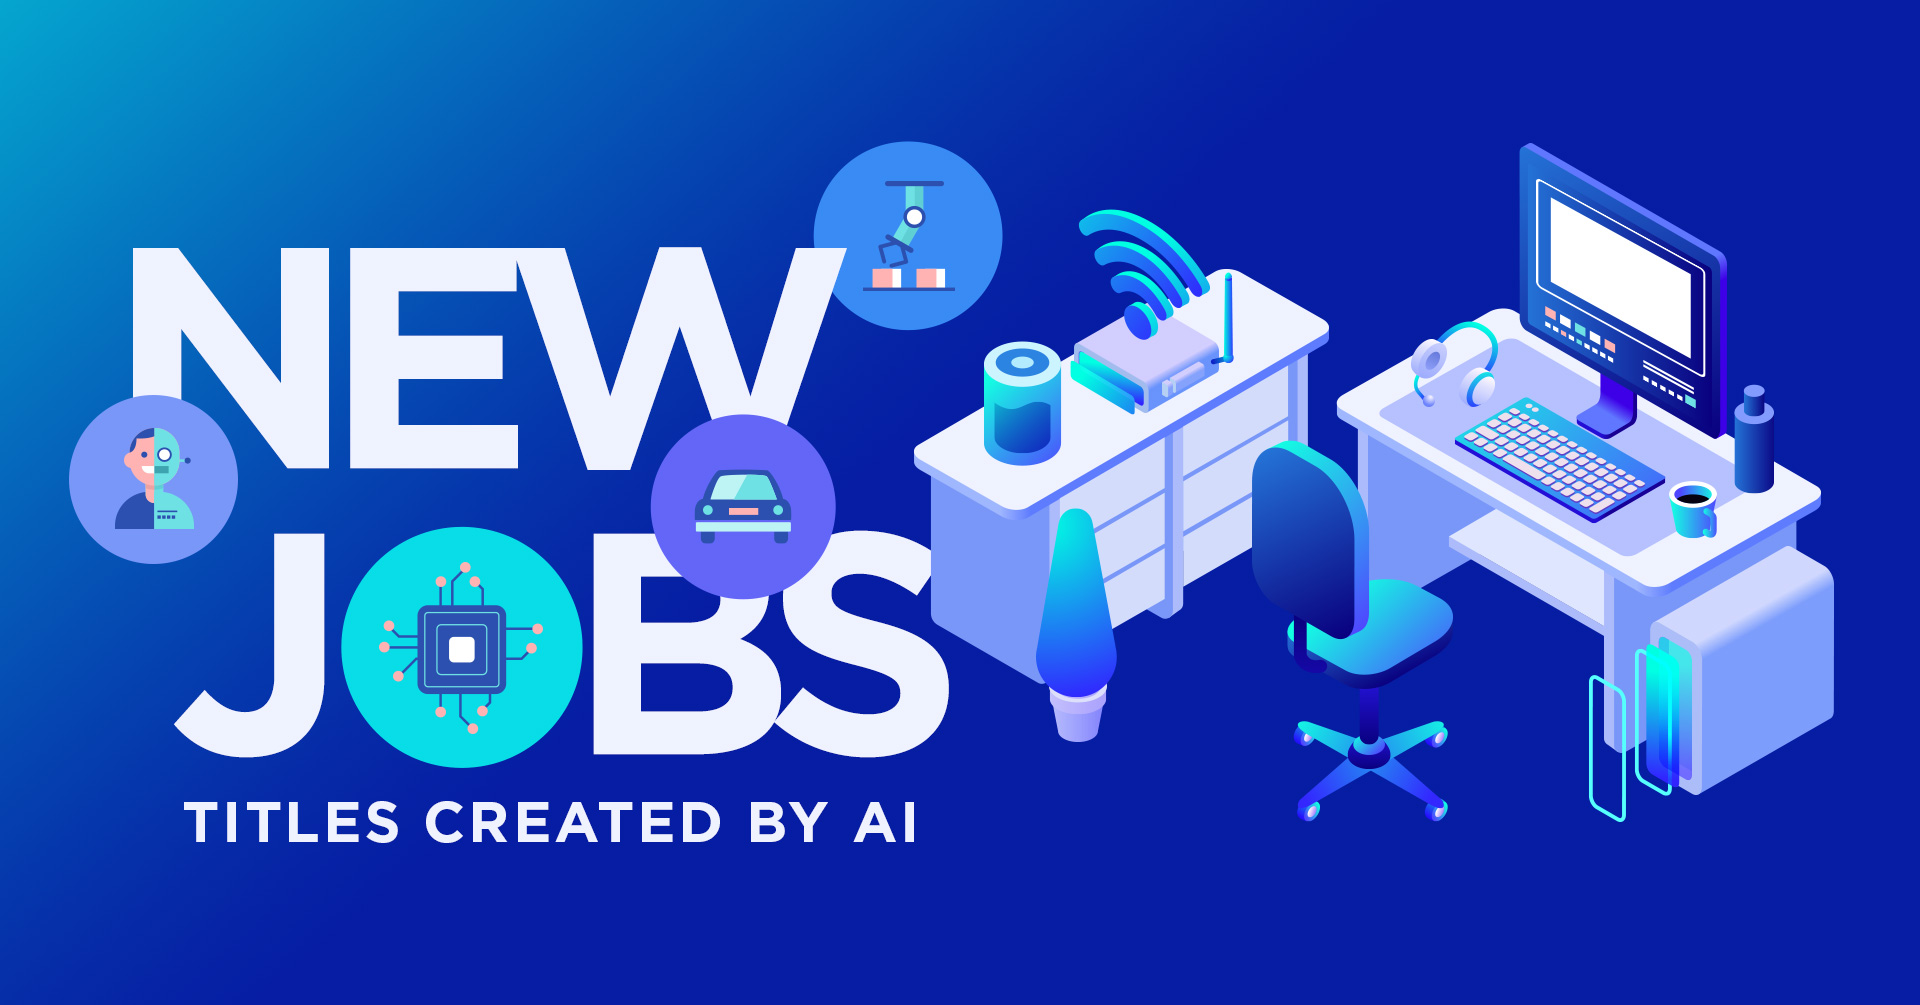 New Job Titles Created by AI